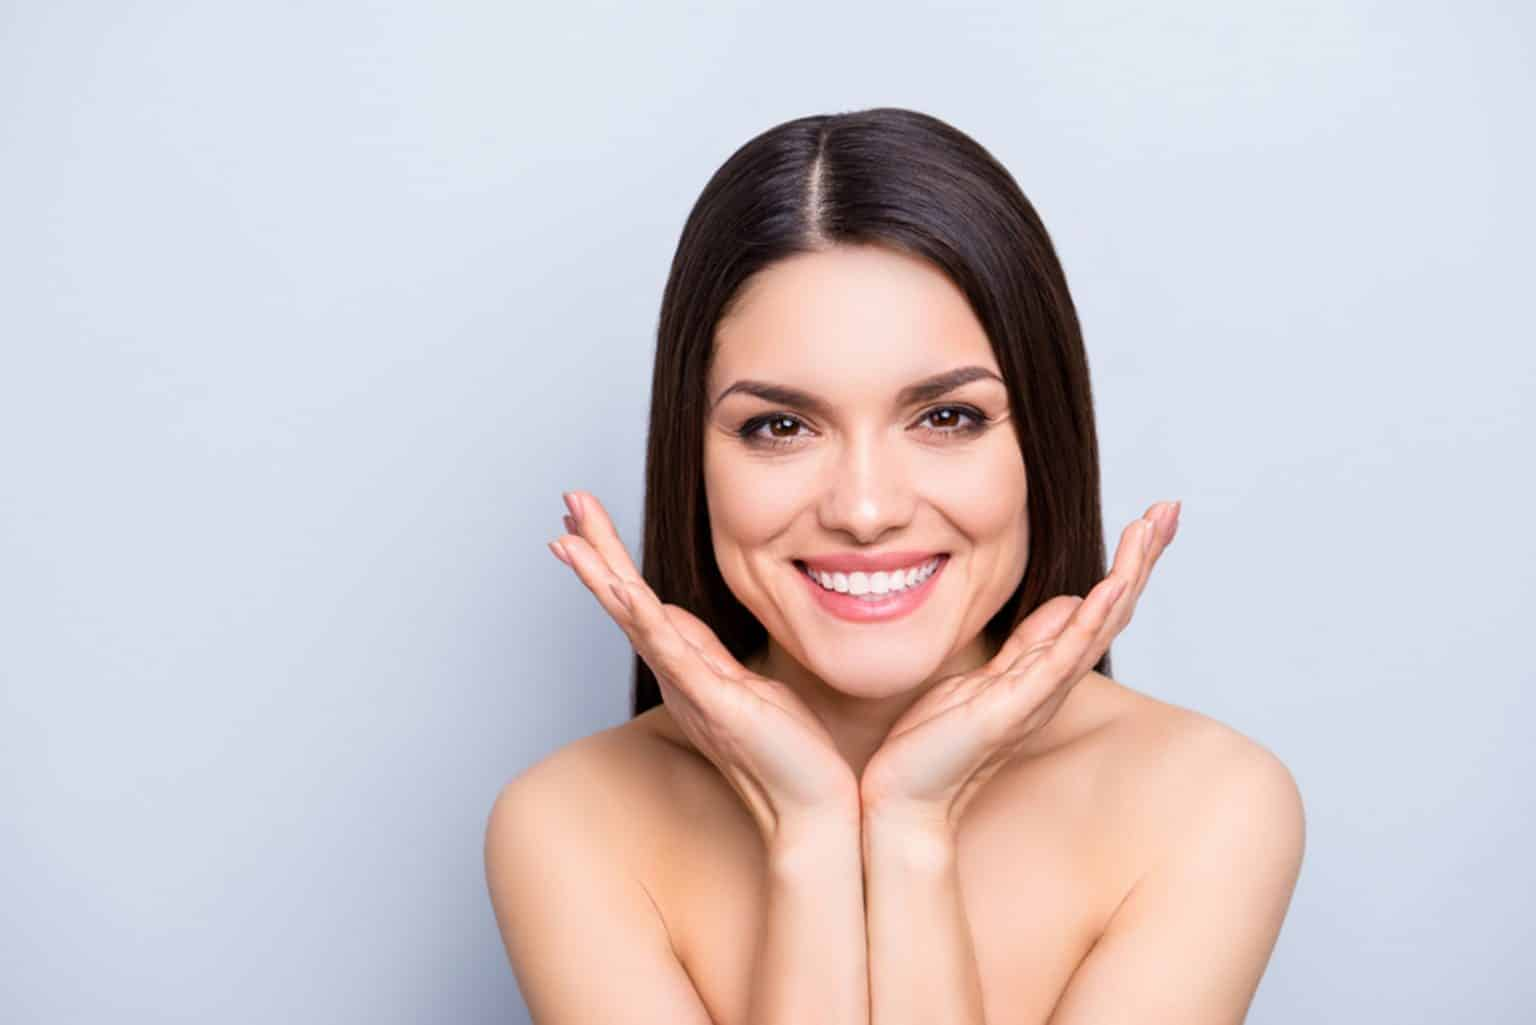 Unleash Your Smile With Help From Botox and Dermal Fillers